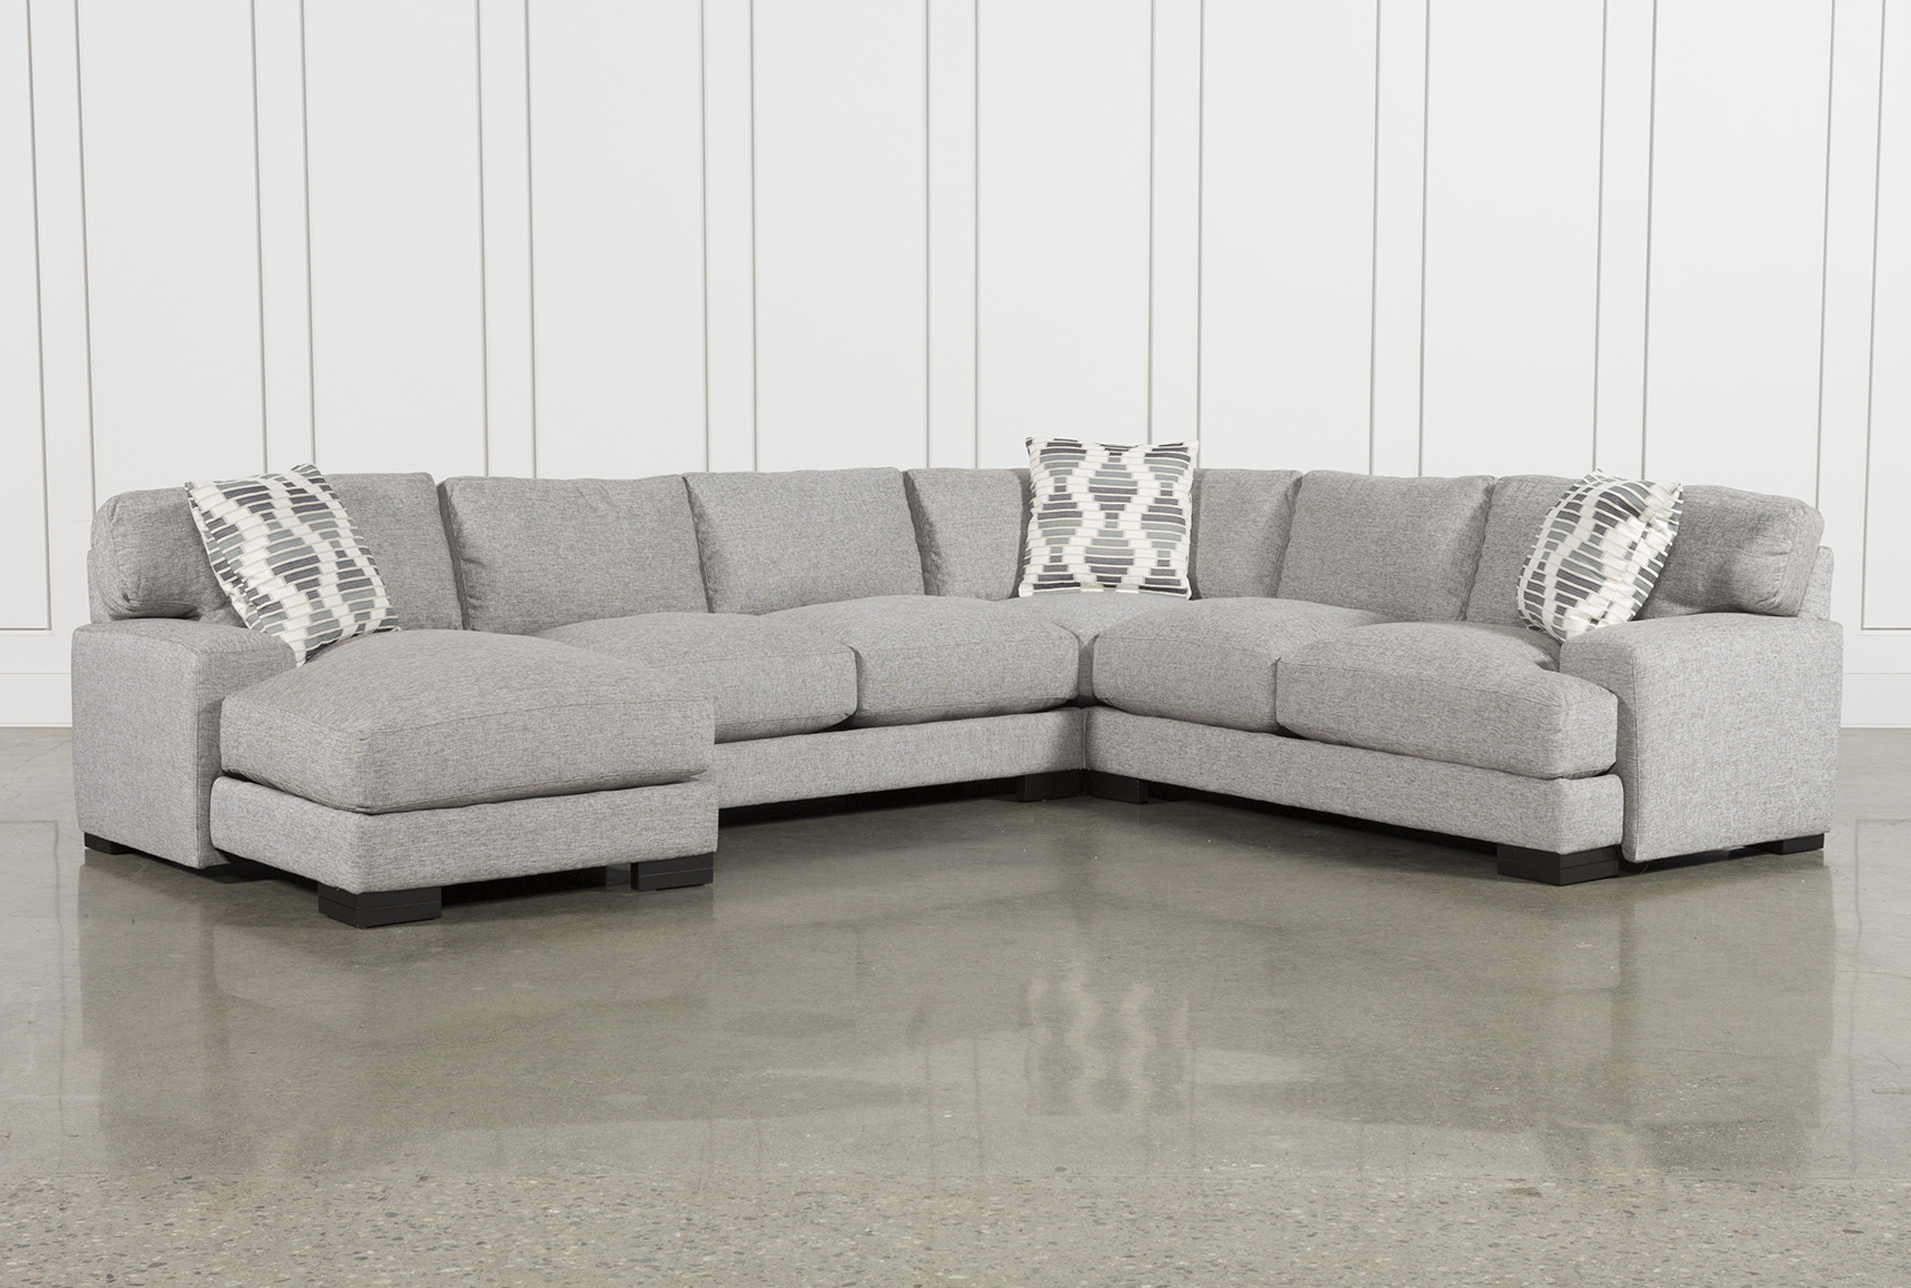 Most Up To Date Harper Foam 3 Piece Sectionals With Raf Chaise With Regard To Harper Foam 3 Piece Sectional W/raf Chaise (View 13 of 20)